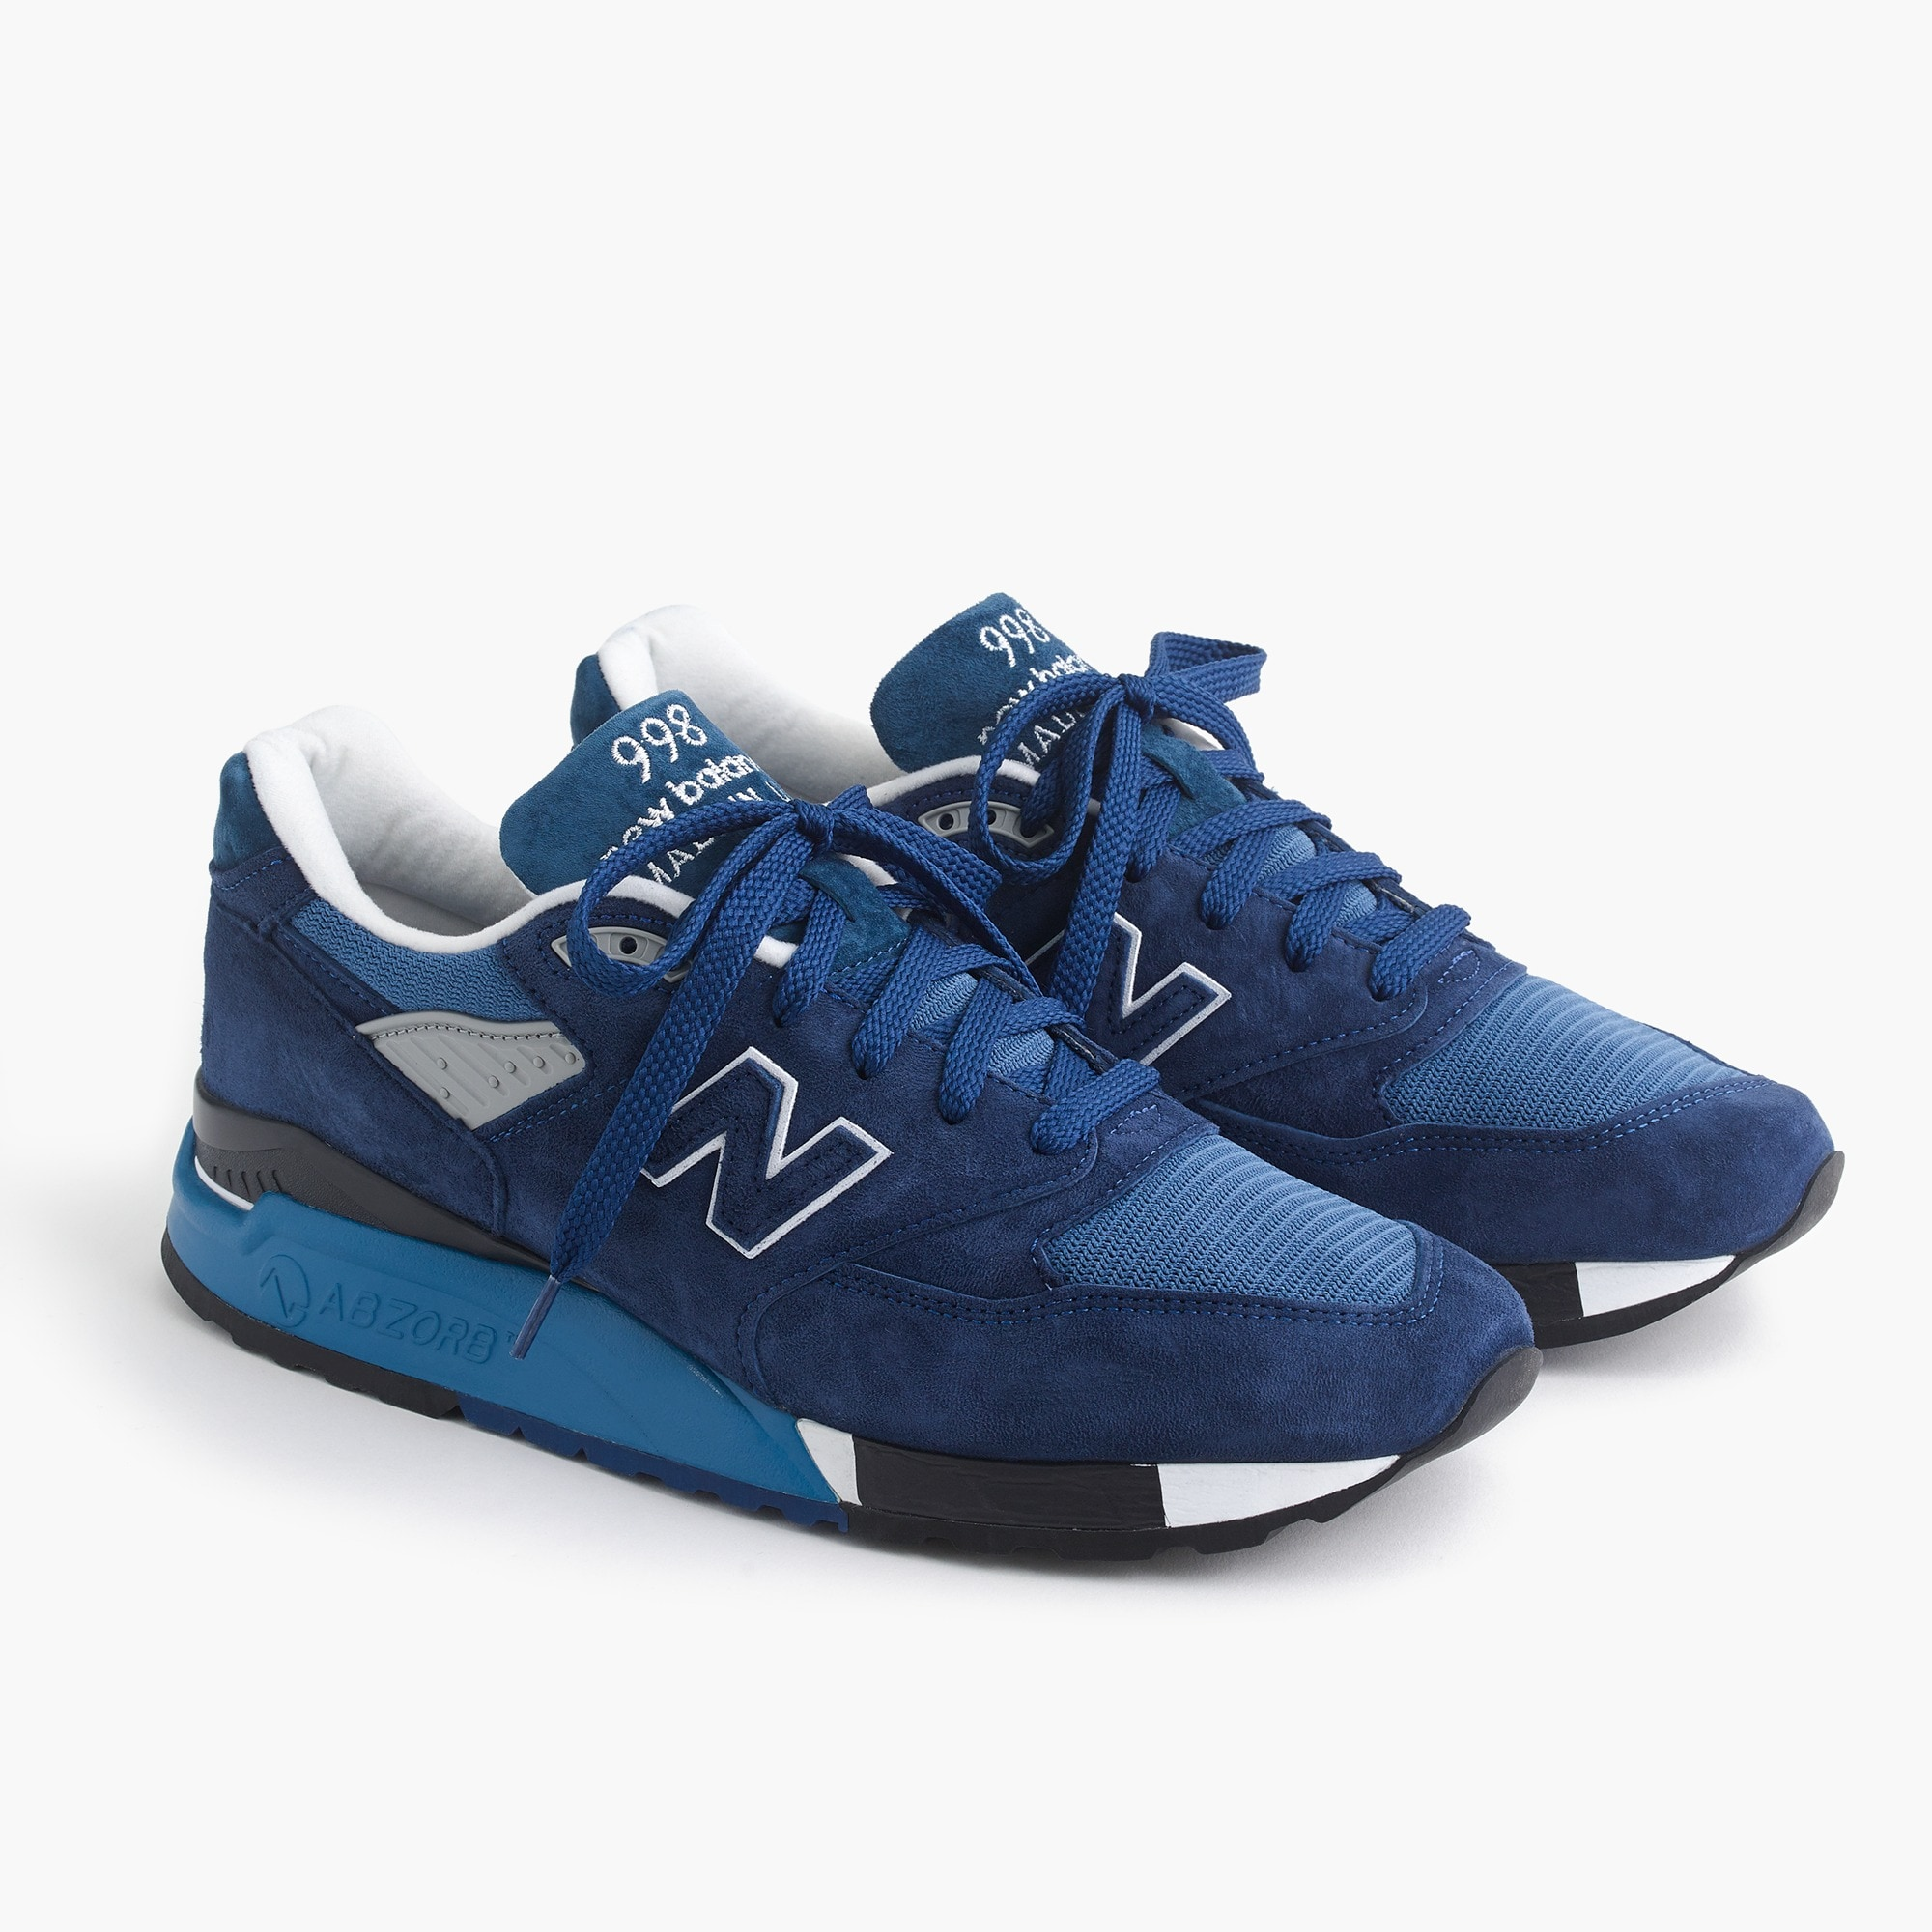 New Balance® for J.Crew 998 National Parks sneakers men j.crew in good company c